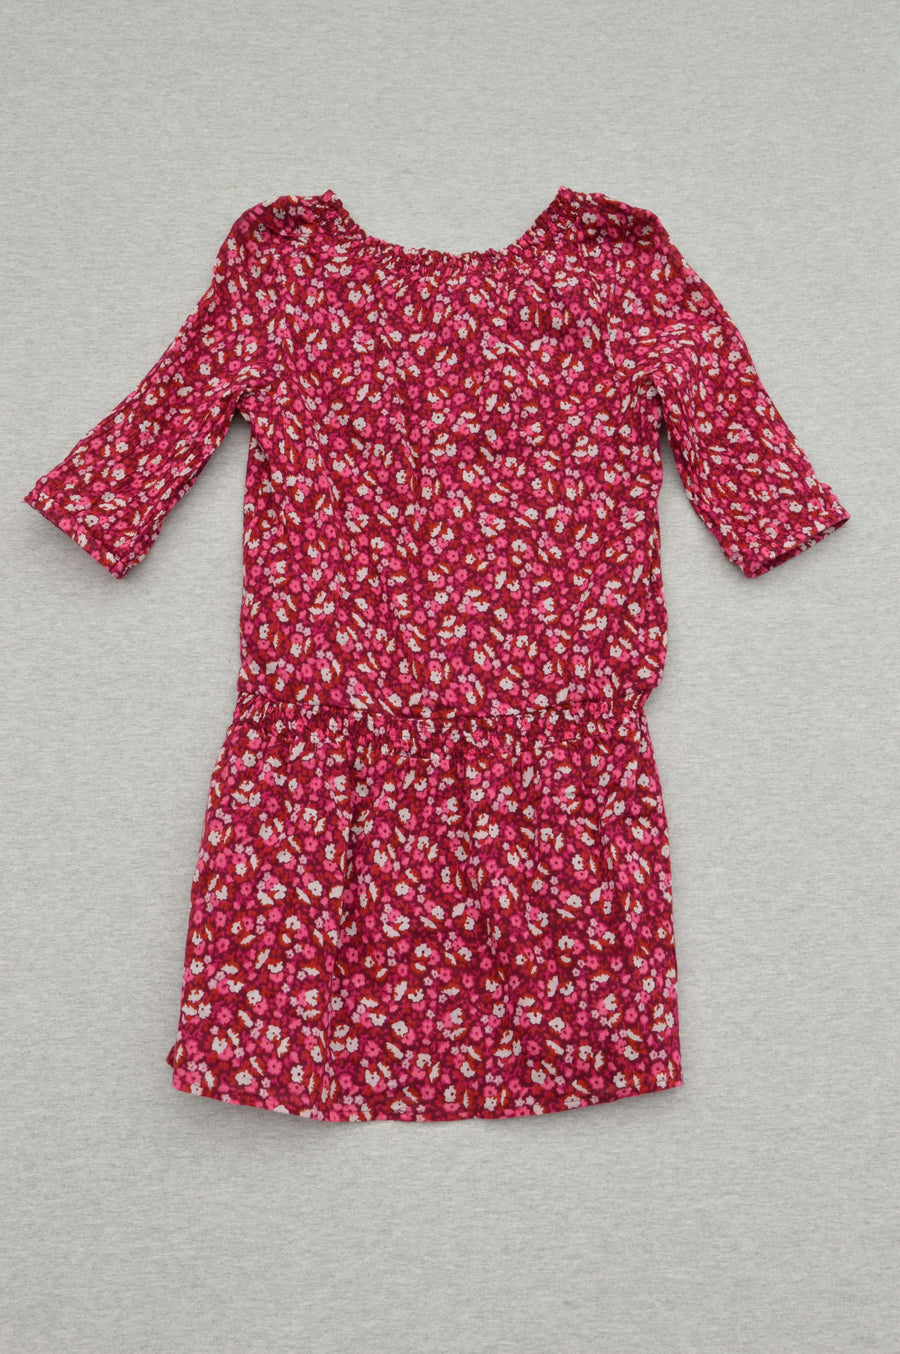 Old Navy - nearly new - maroon floral dress, size 7